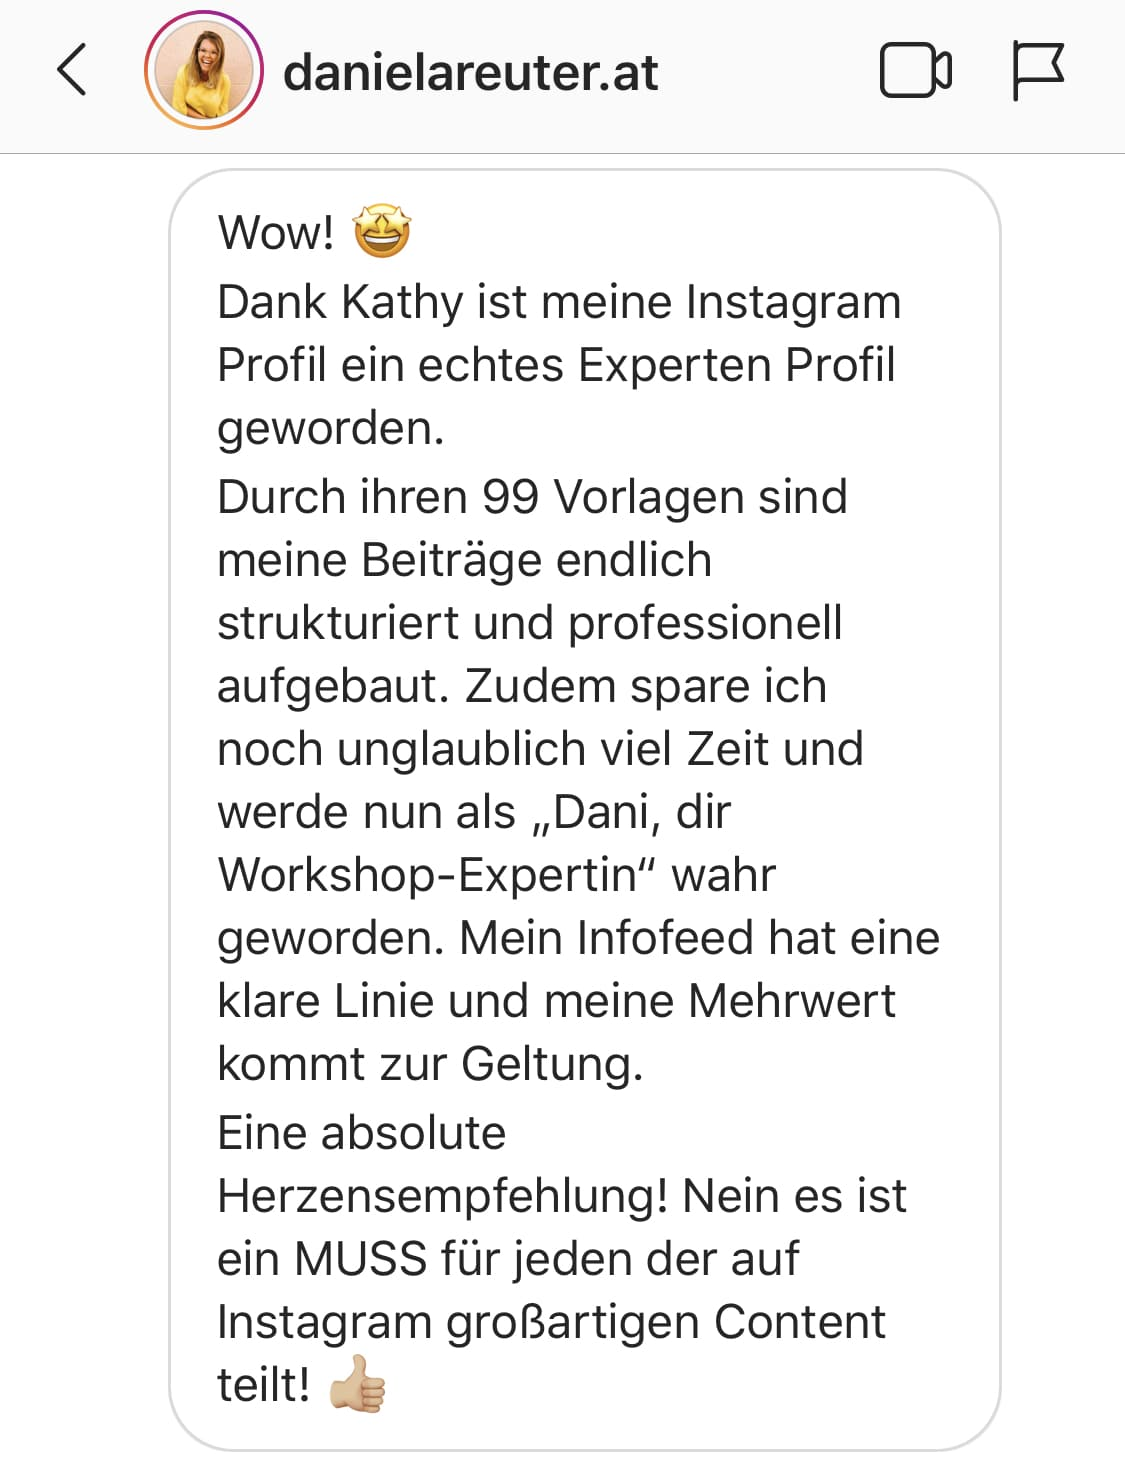 Feedback von danielareuter.at